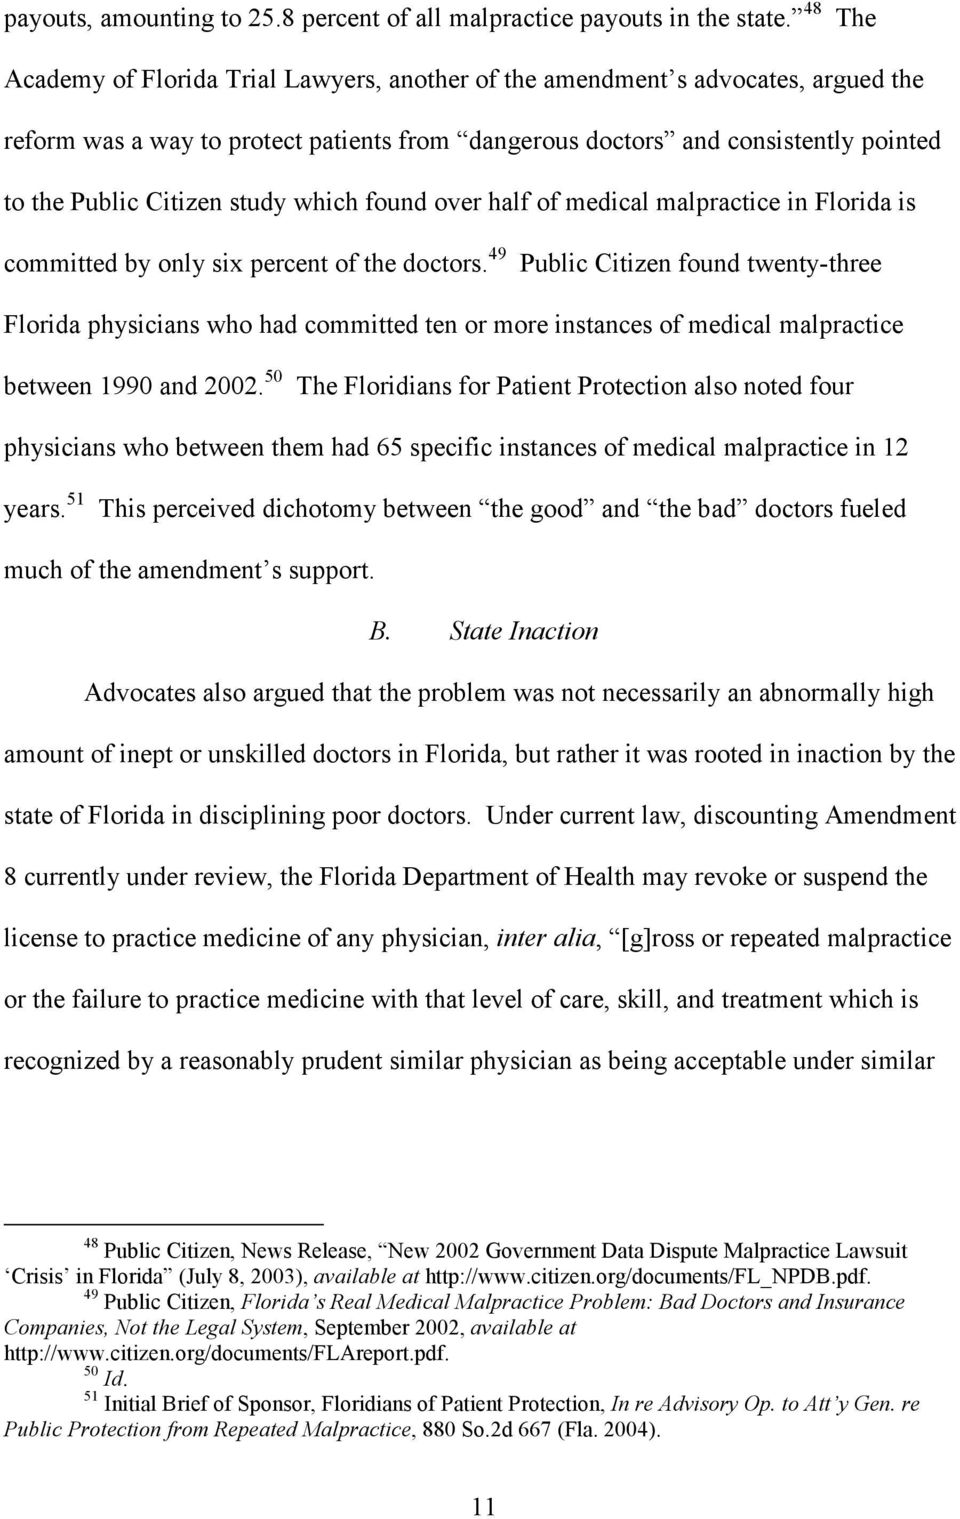 study which found over half of medical malpractice in Florida is committed by only six percent of the doctors.